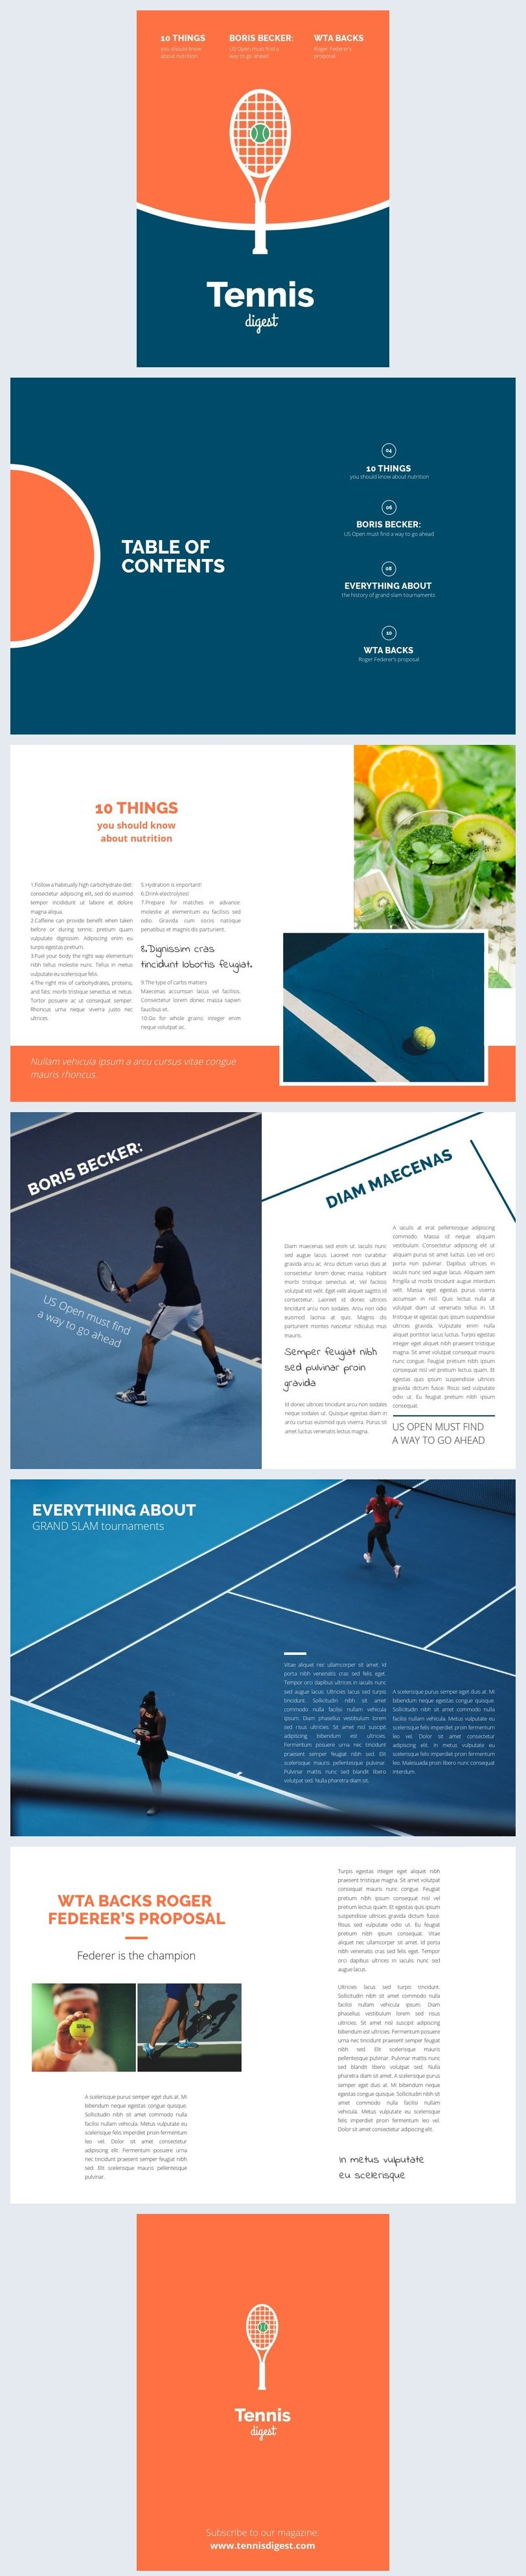 Tennis Magazine Layout Template In 2020 Magazine Layout Layout Template Magazine Template